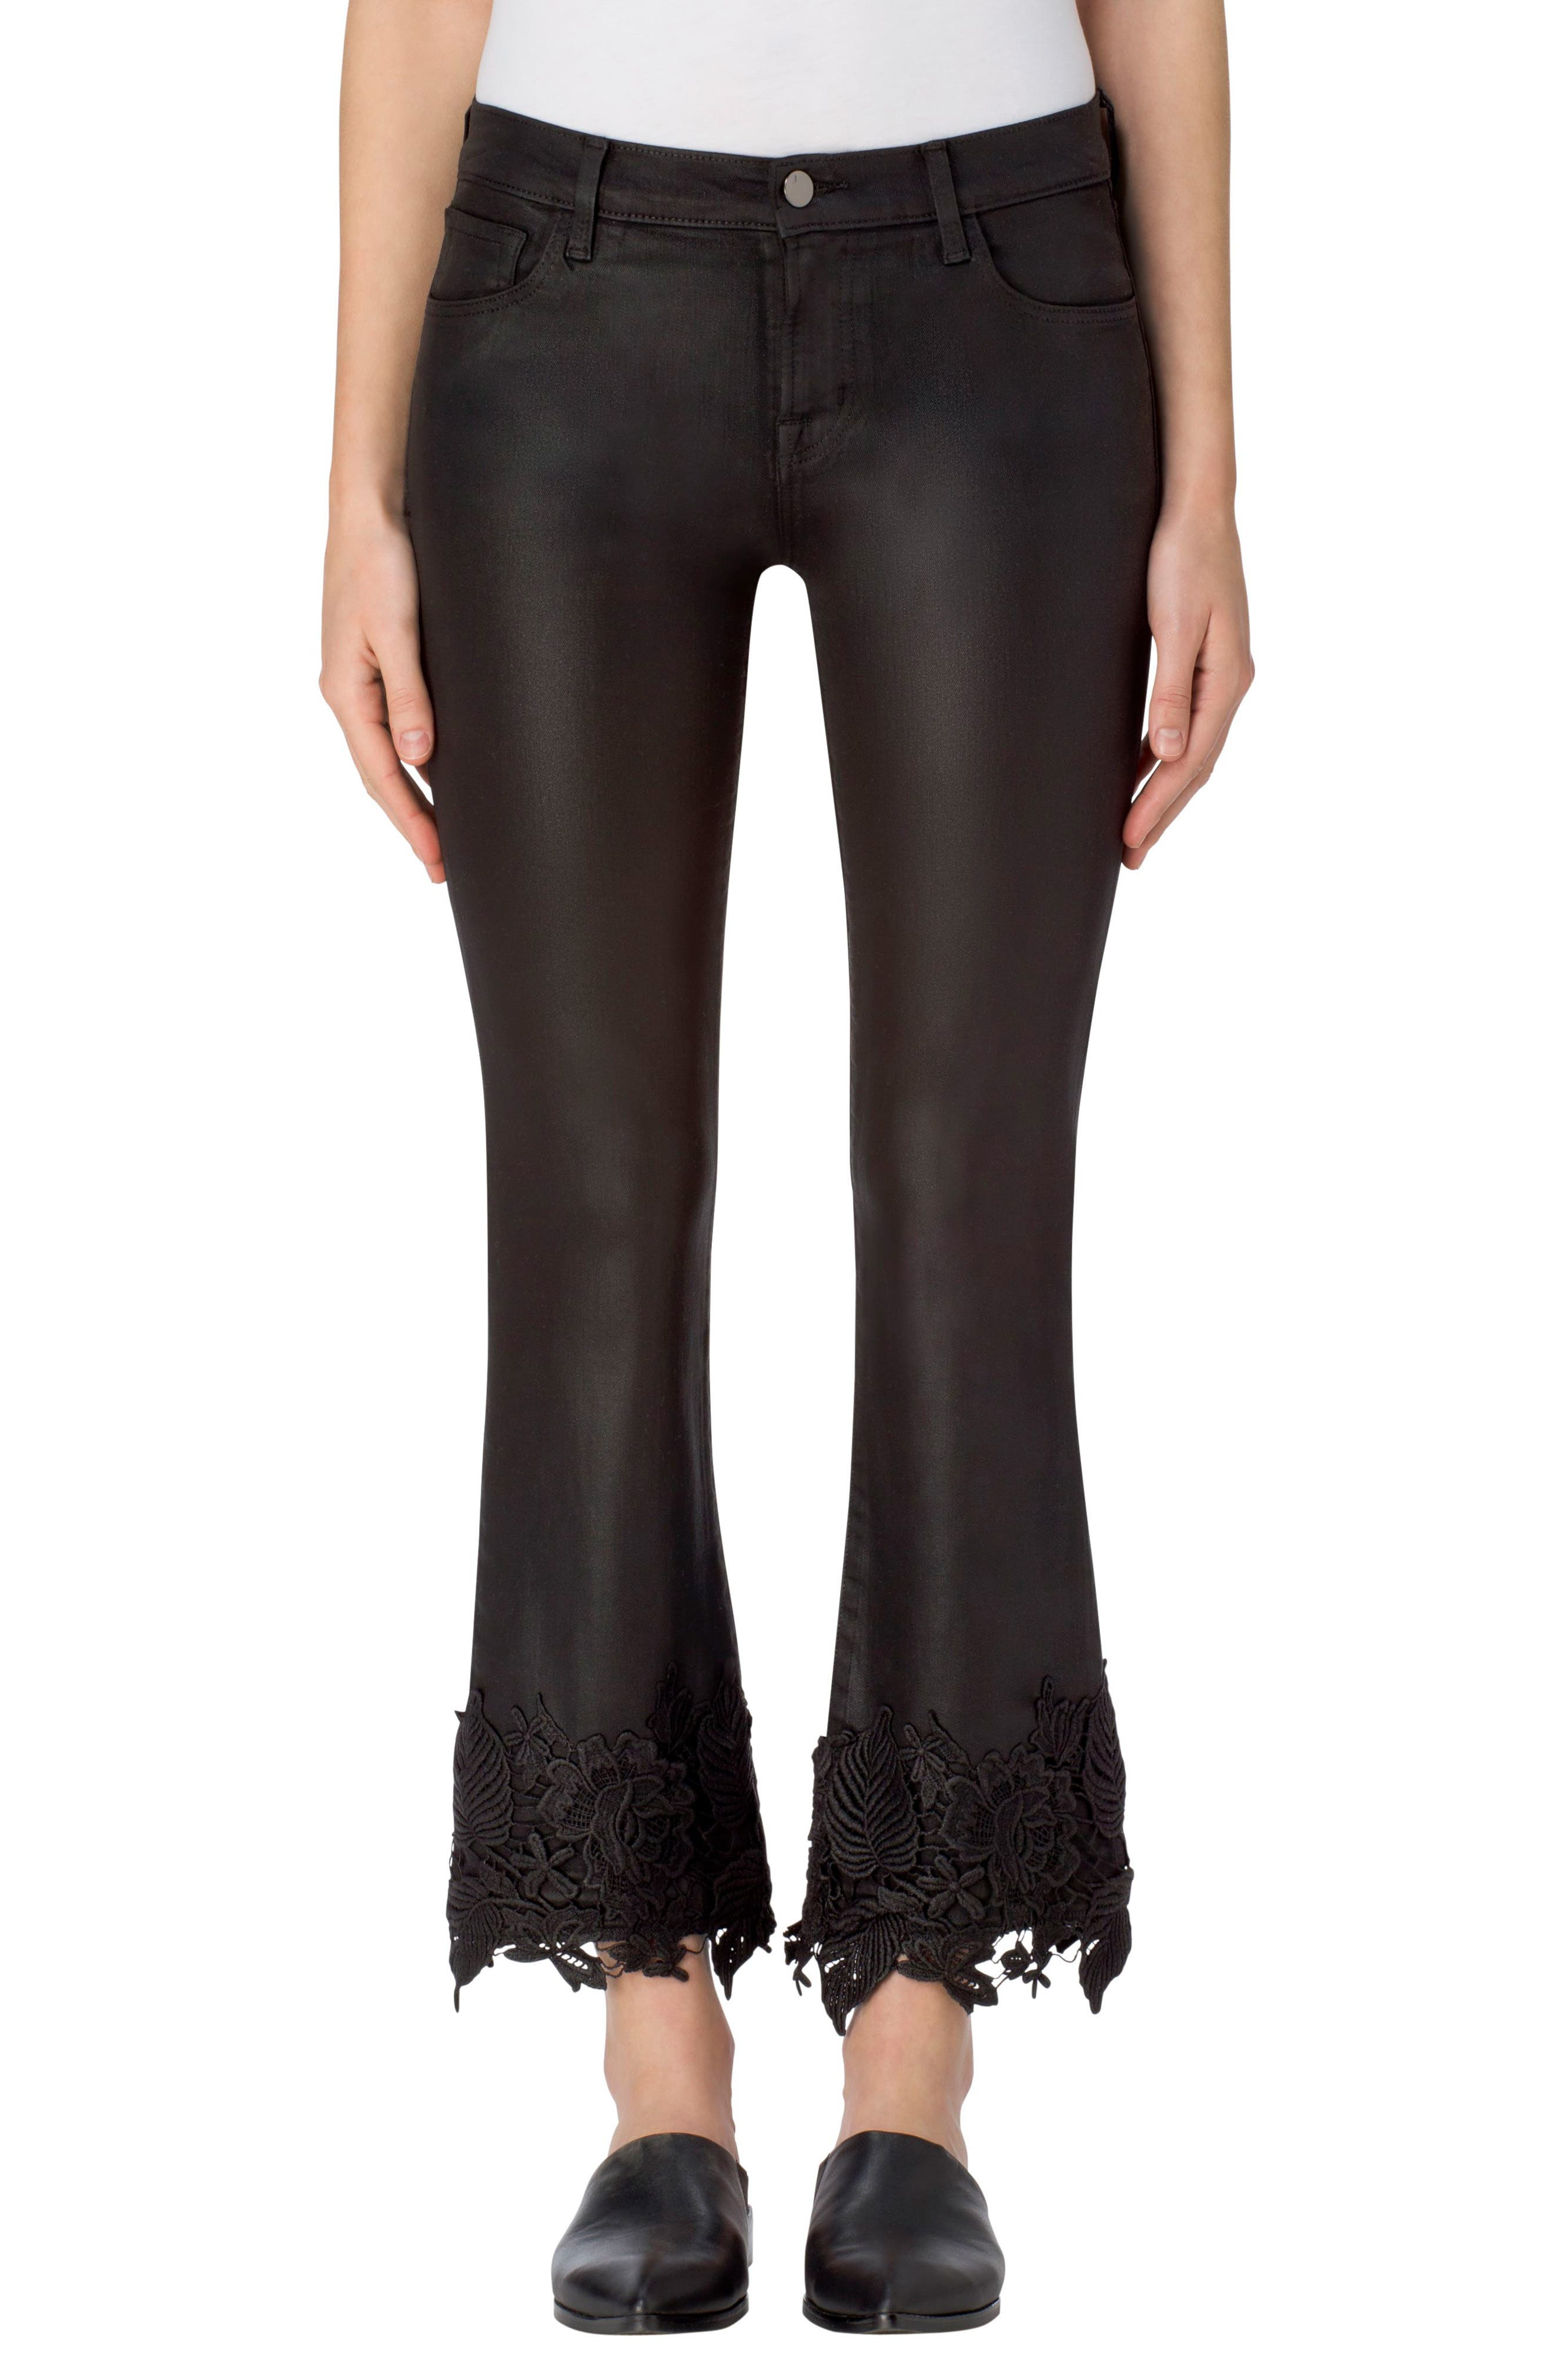 J Brand Selena Crop Bootcut Jeans (Coated Black Lace)